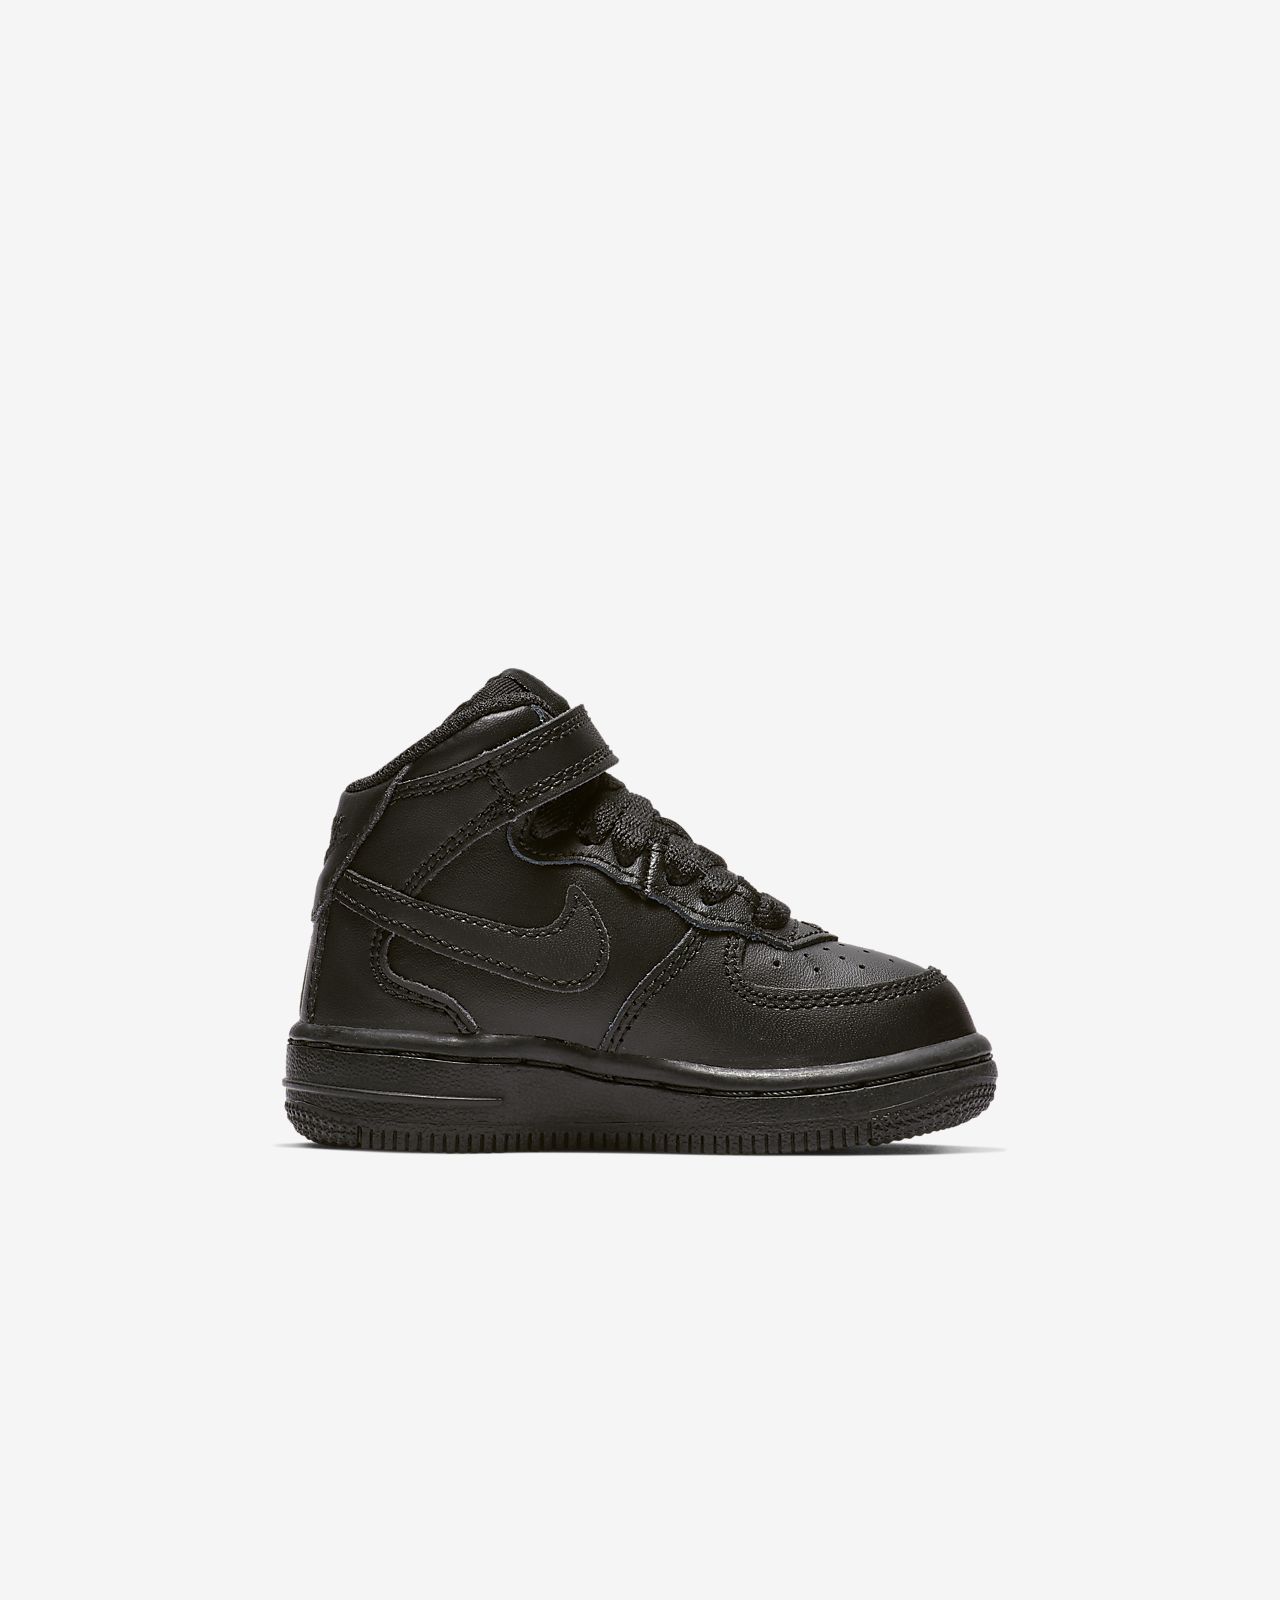 cheap for discount 6251f f5ad5 ... Nike Air Force 1 Mid Infant Toddler Shoe